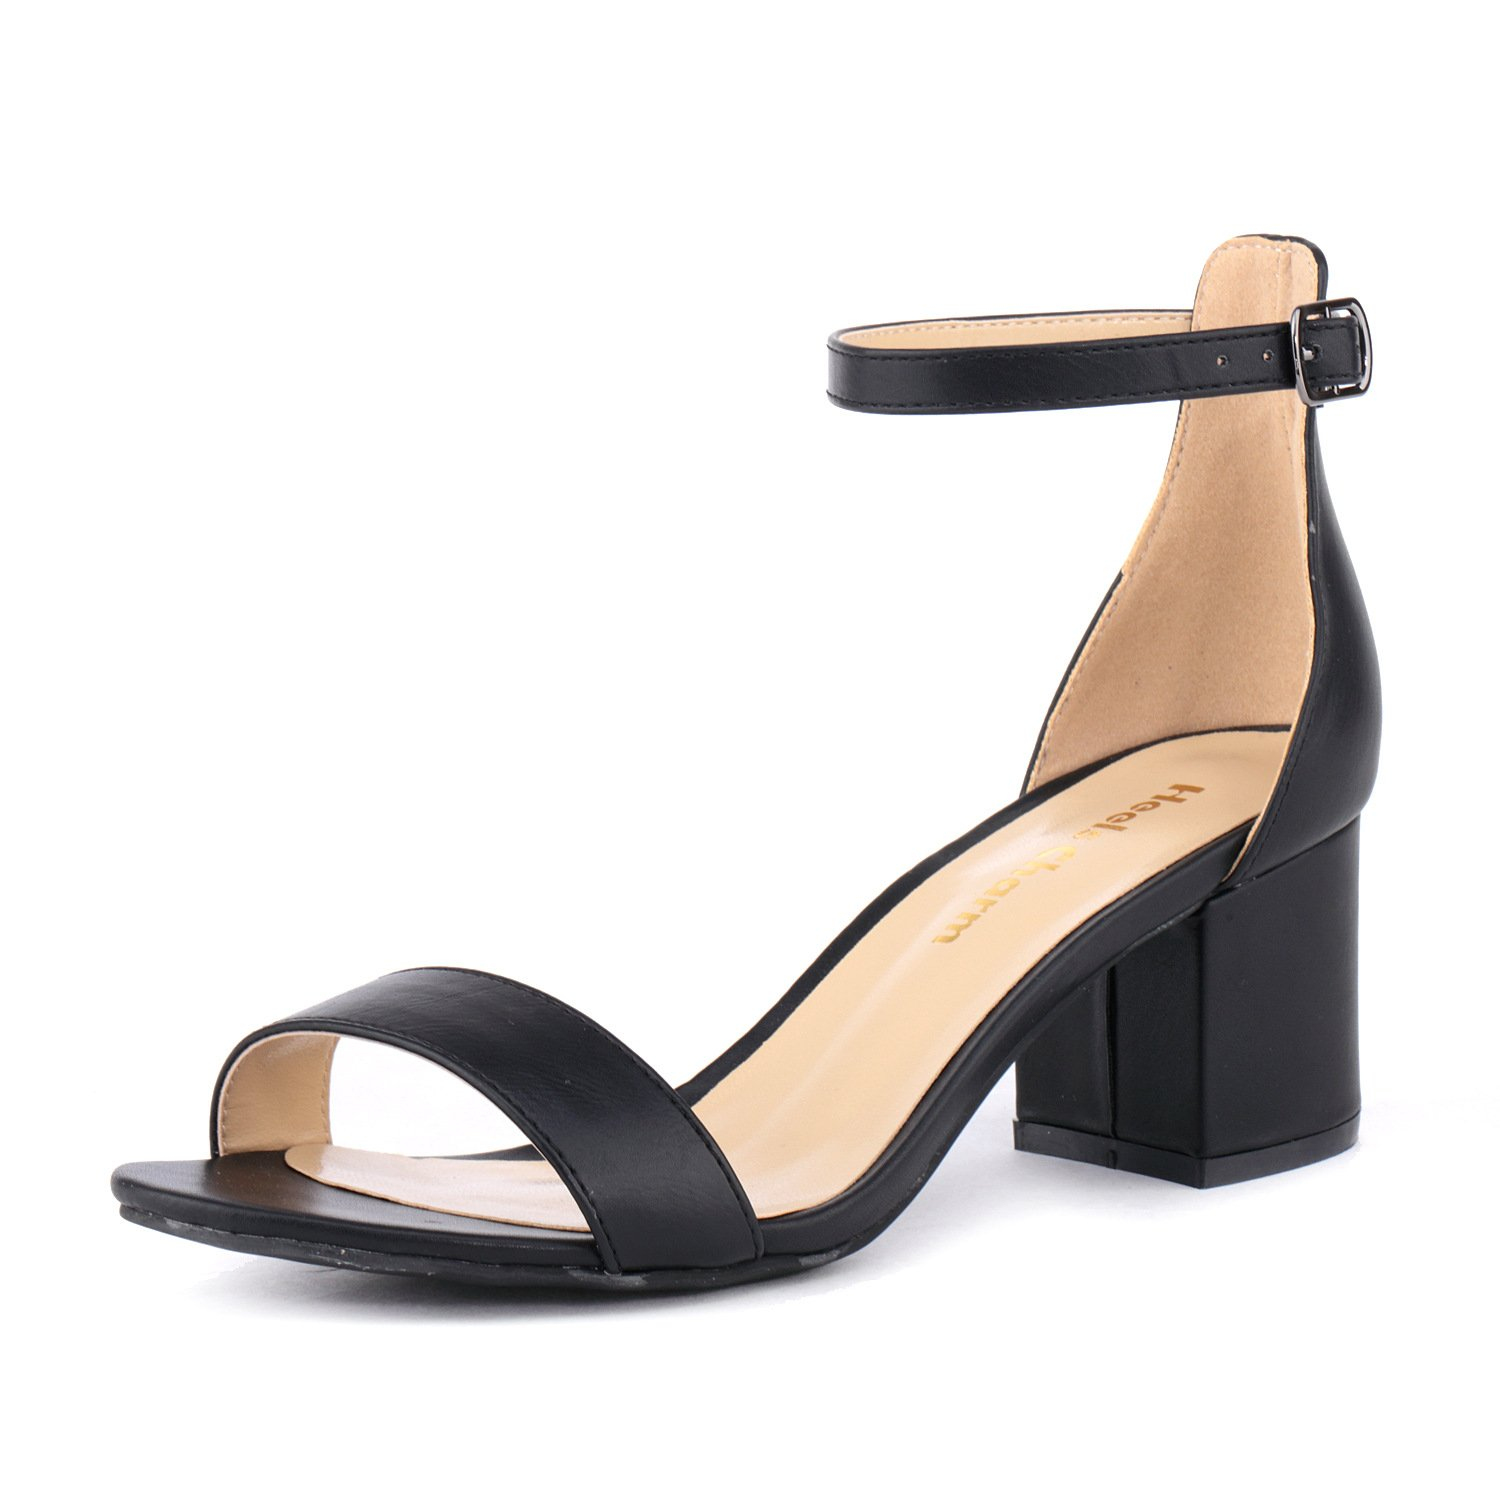 High For Open Ankle Dress Party Wedding Sandals Office Toe Shoes Strap Women's Strappy Heel Chunky Block Evening qVzUMSp